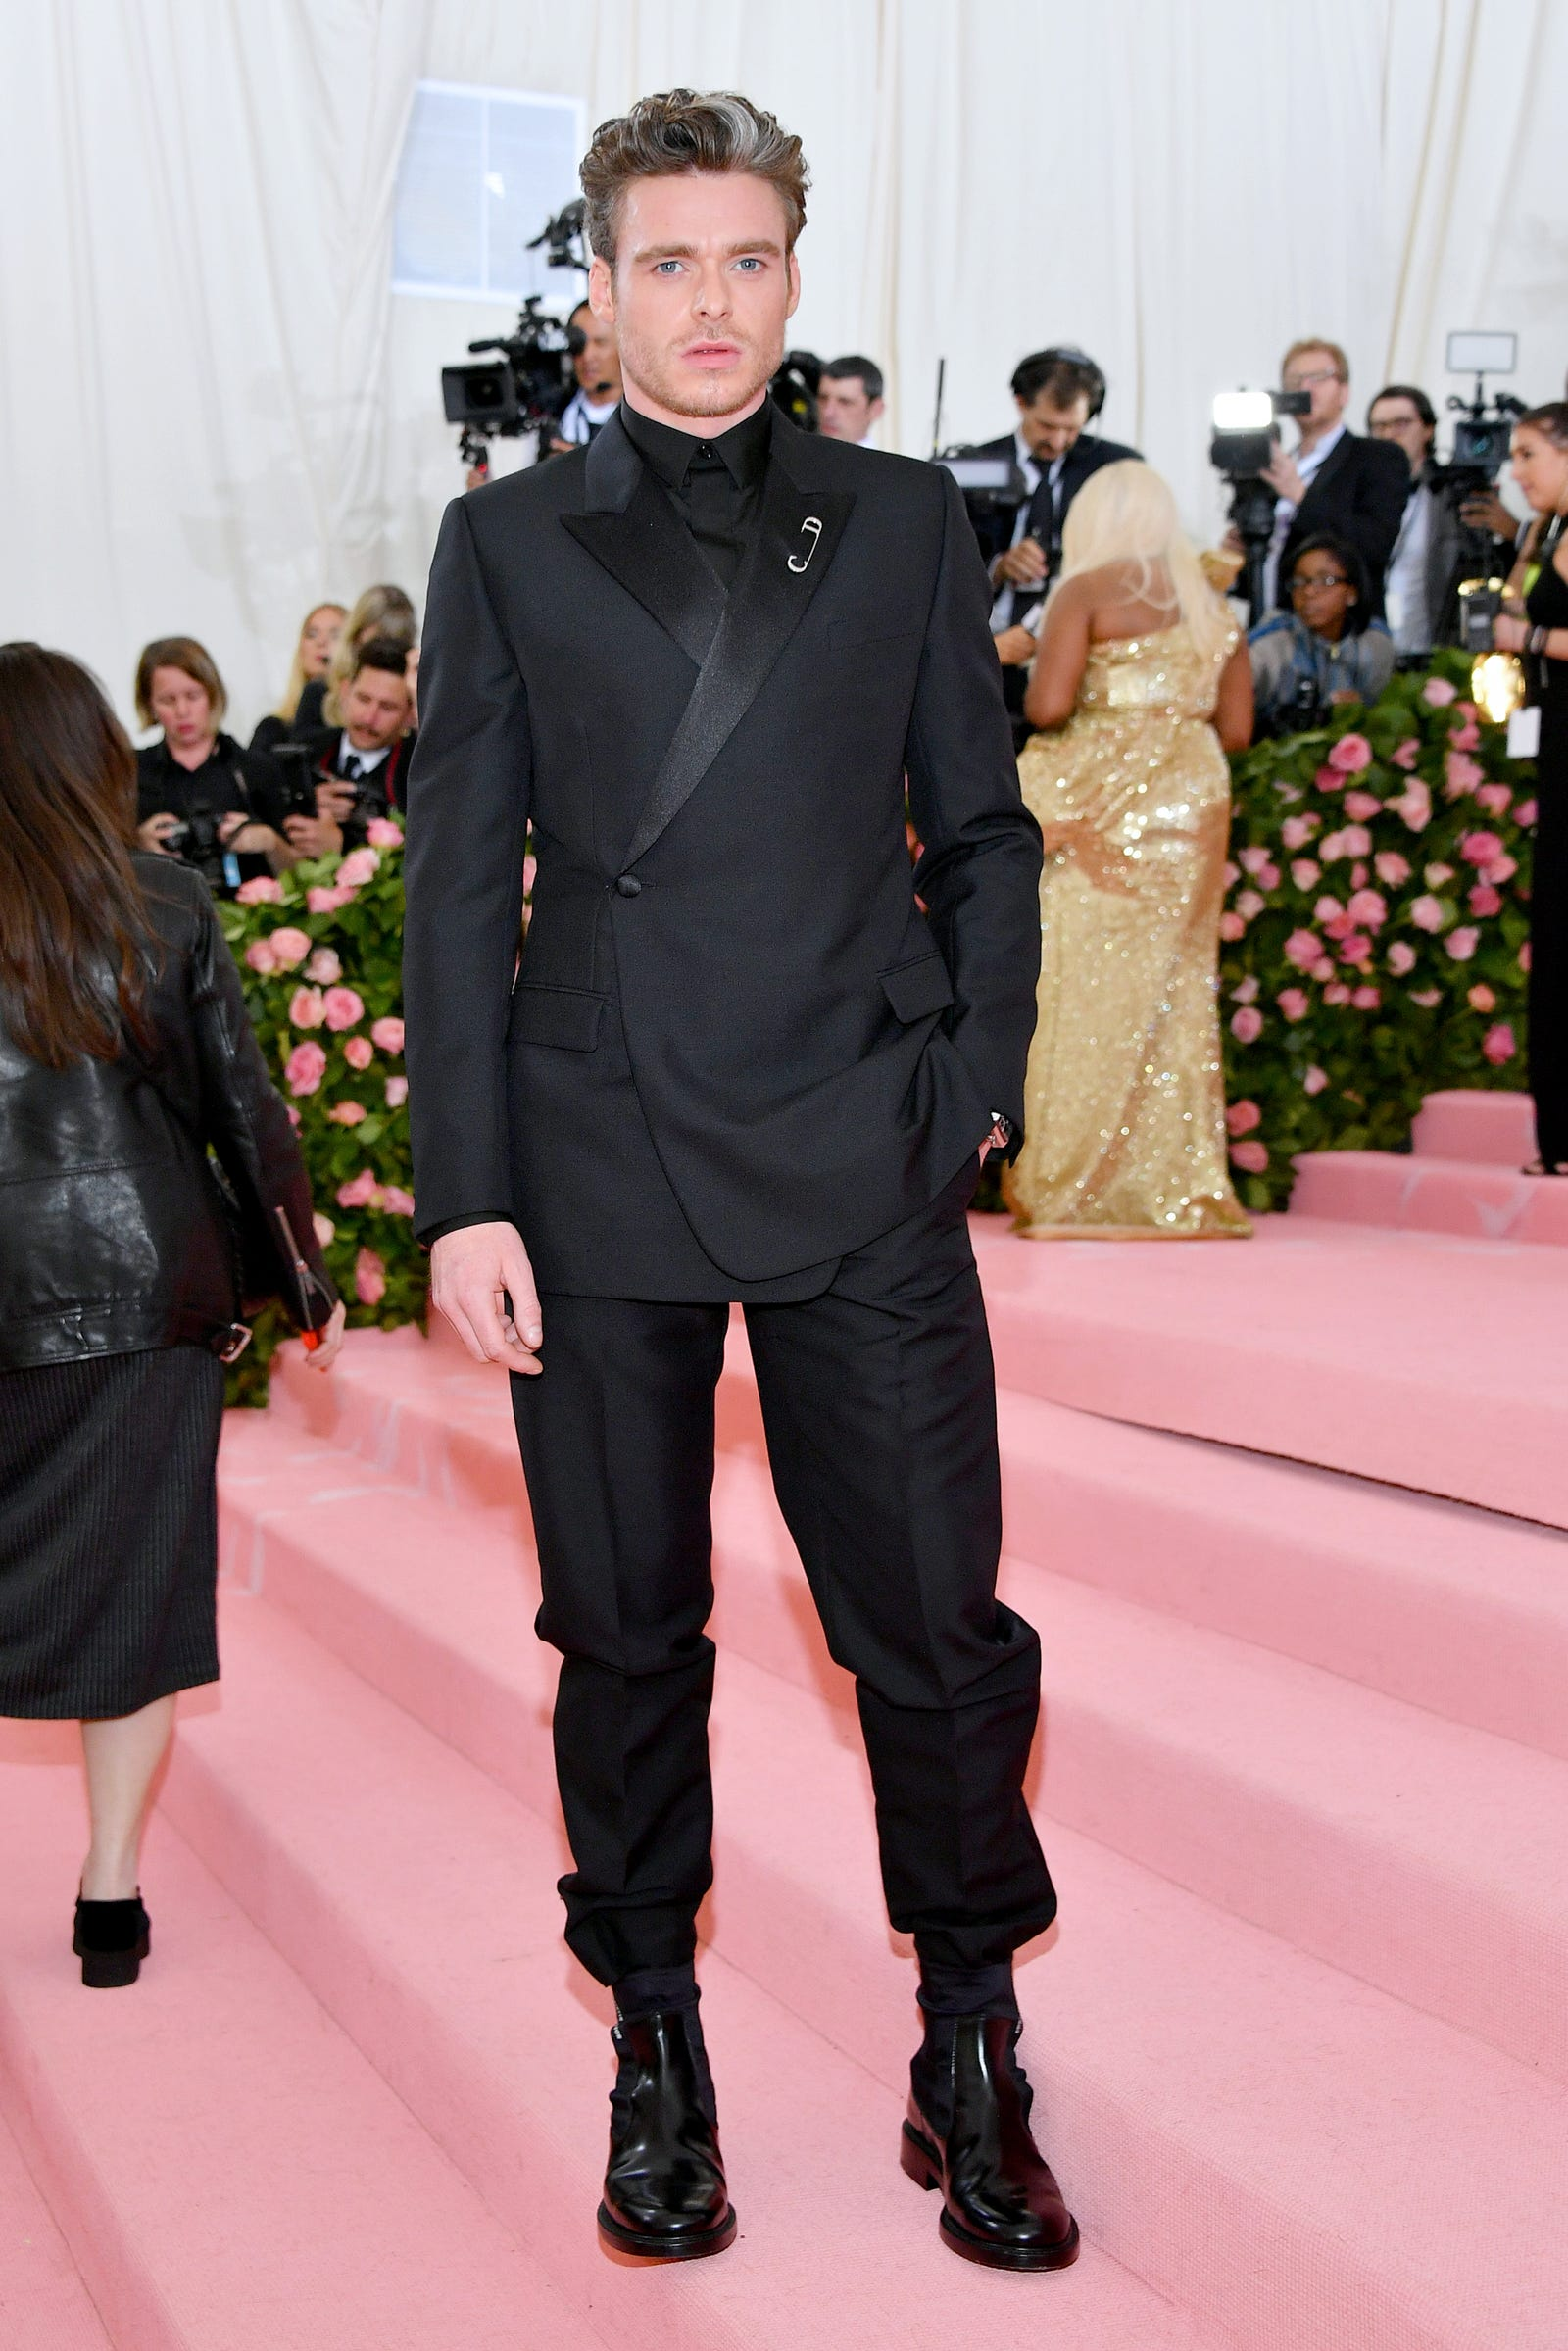 Richard Madden at the Met Gala 2019